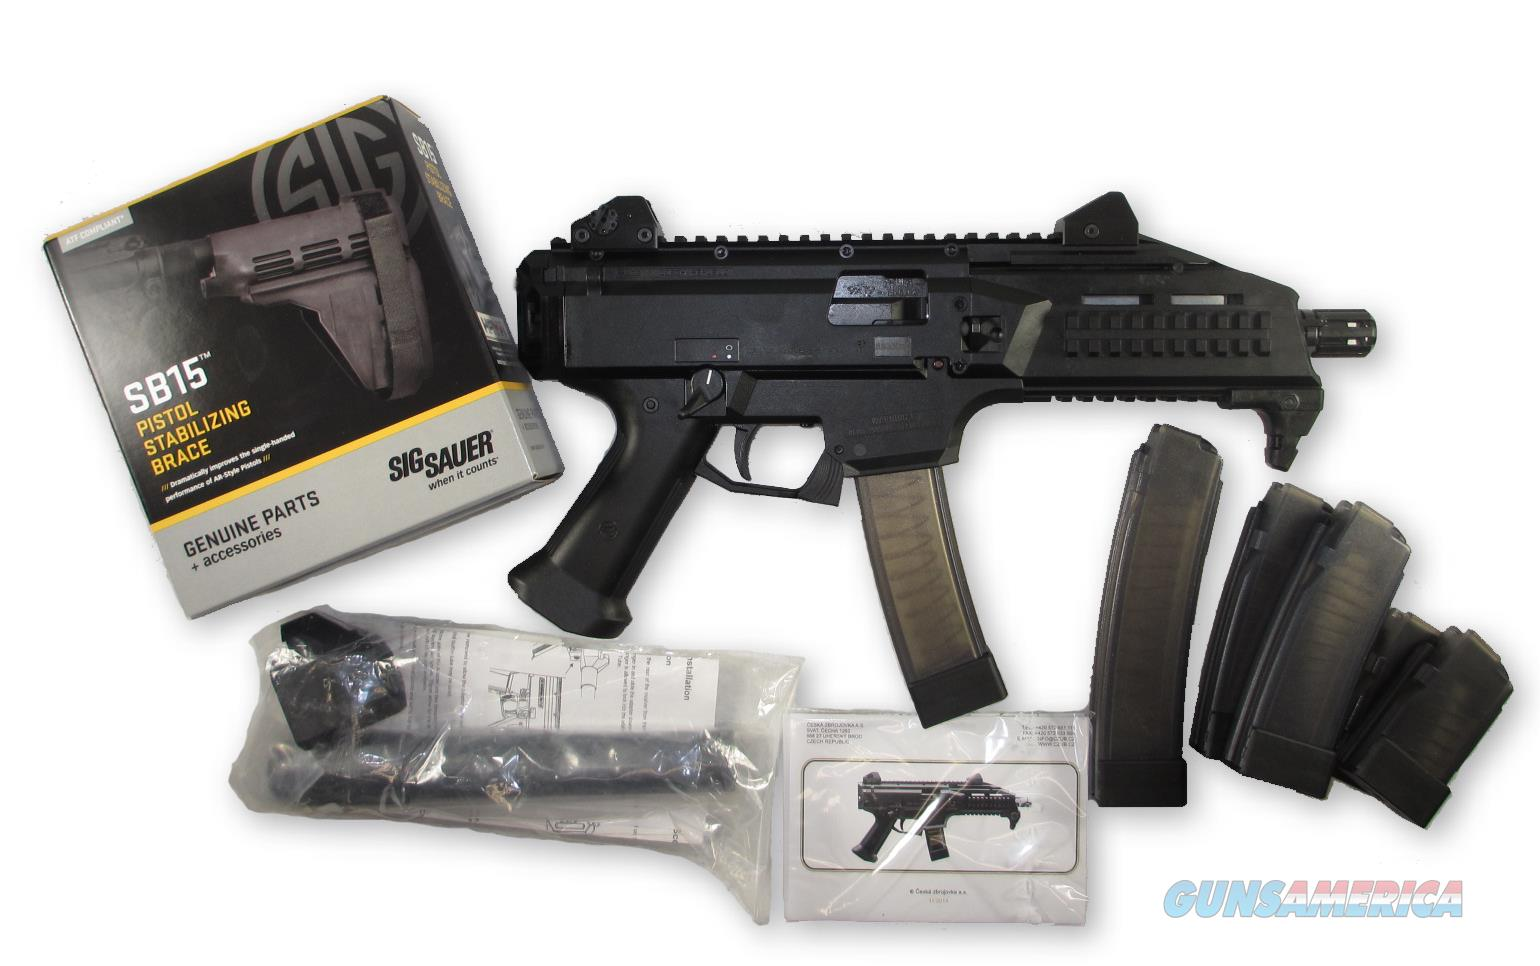 CZ SCORPION EVO 3 S1 PISTOL 9MM + 2 10RD MAGS + 2 30RD MAGS + SIG BRACE + SIG BRACE ADAPTER  Guns > Pistols > CZ Pistols